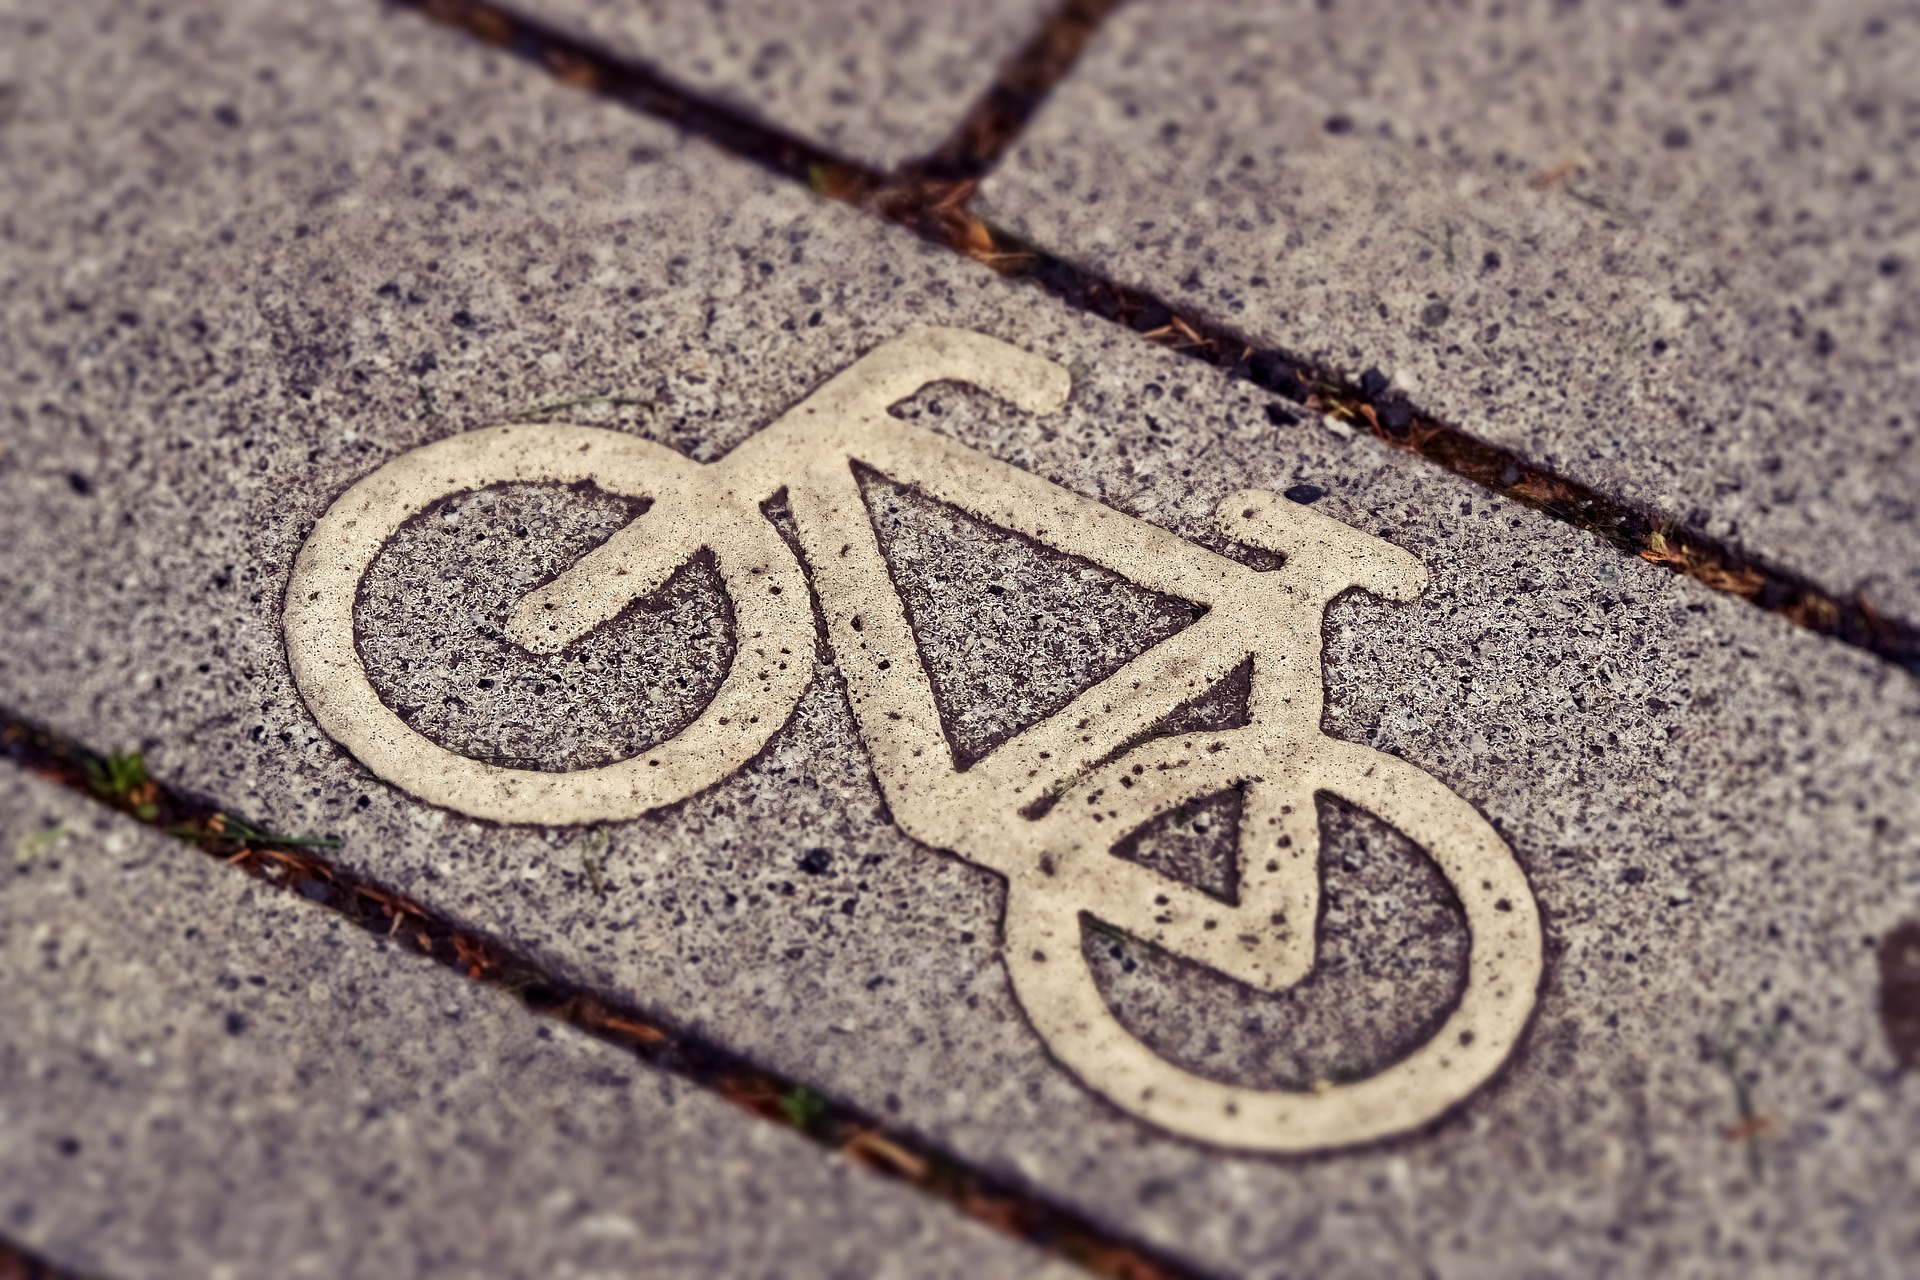 Bike path (via Pixabay)